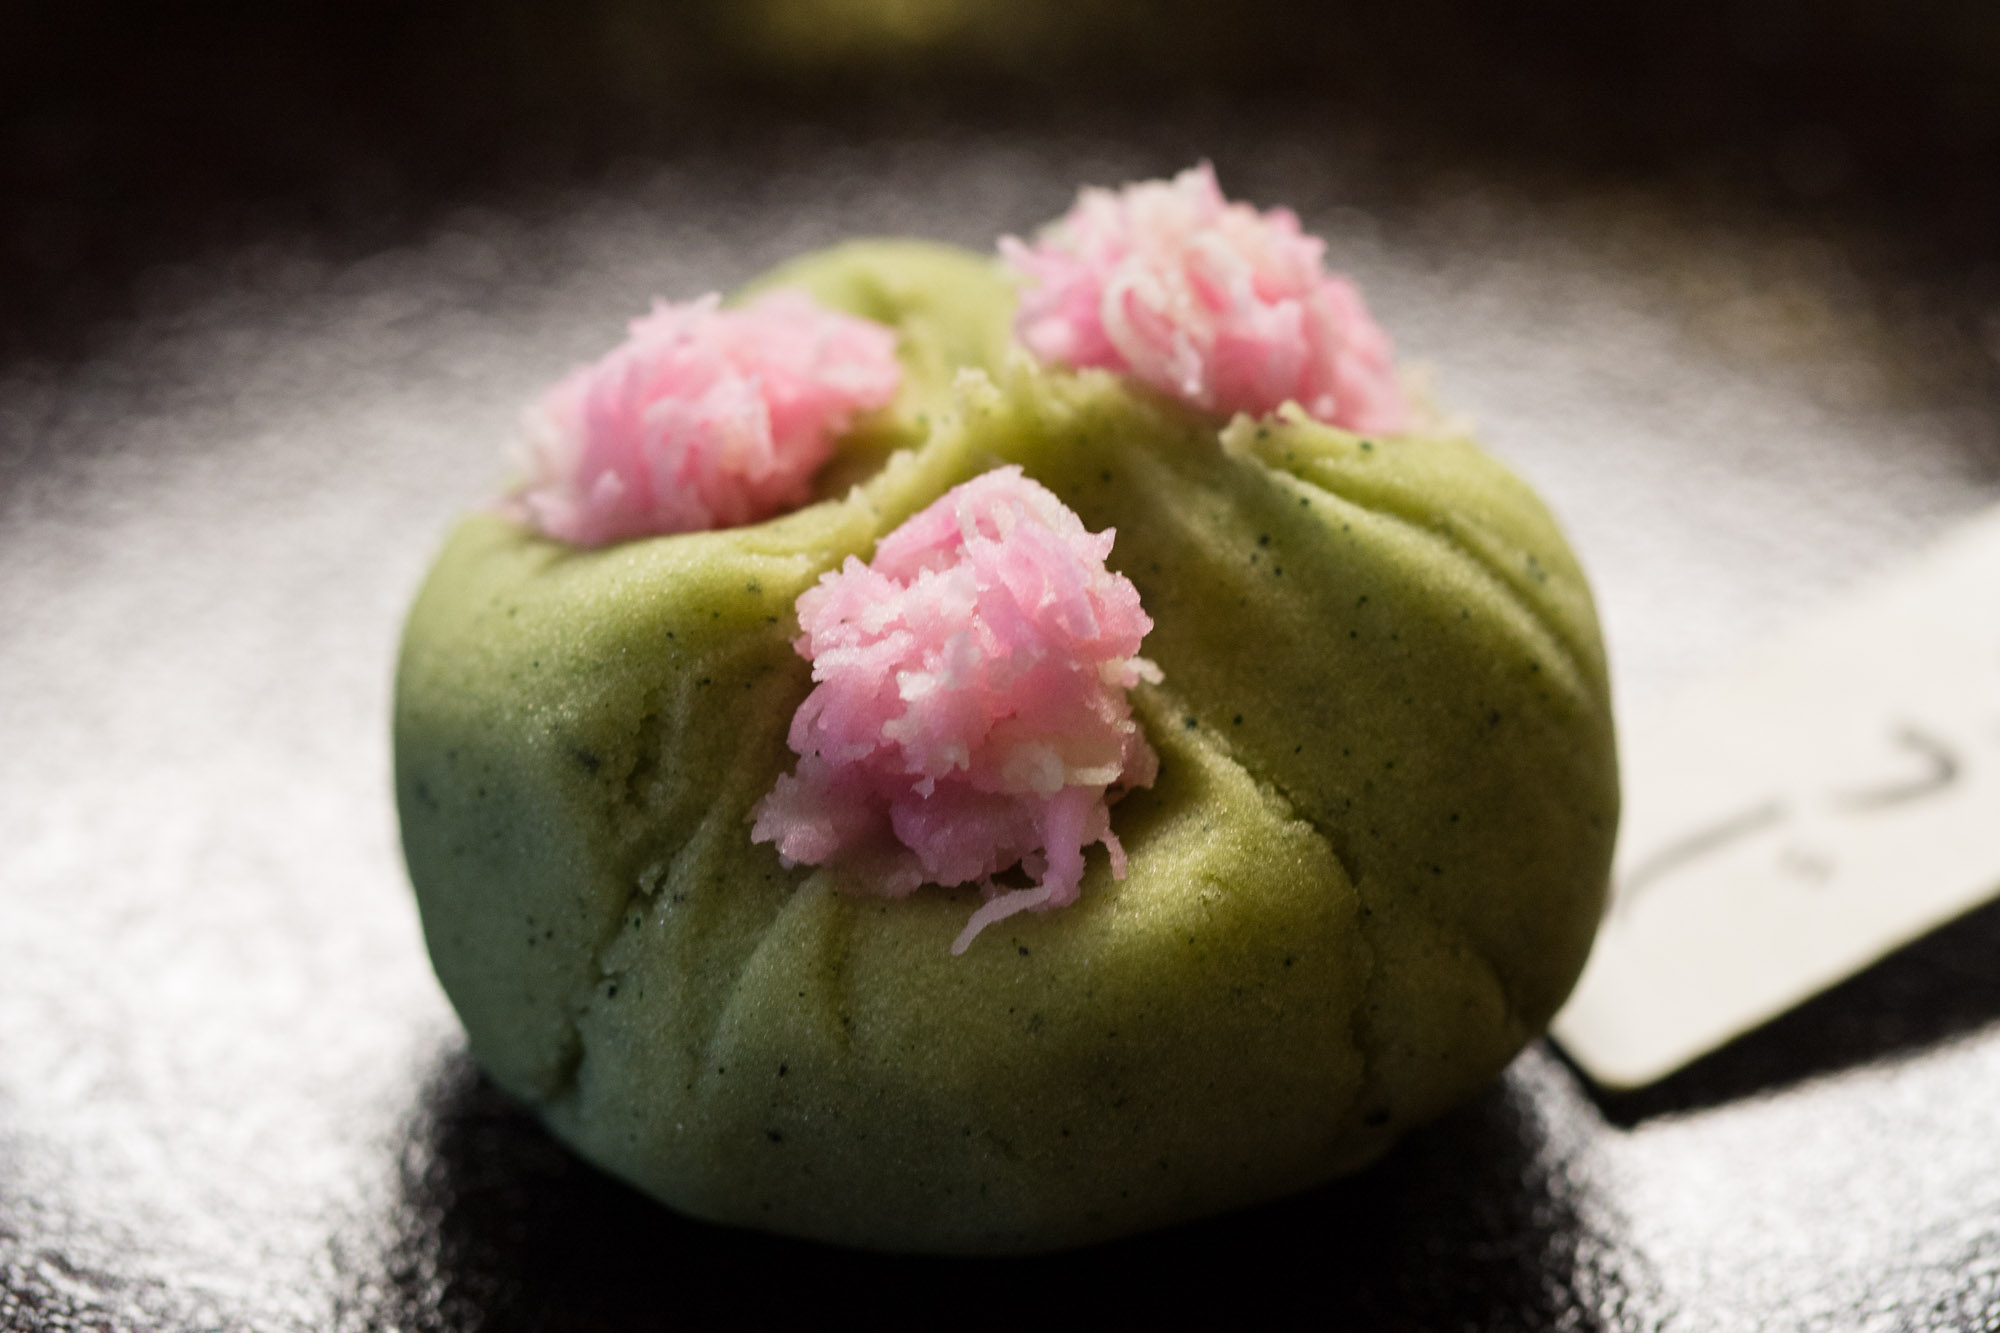 Azaleas with their roots in a stone - Juko, Kyoto (served at tea ceremony)